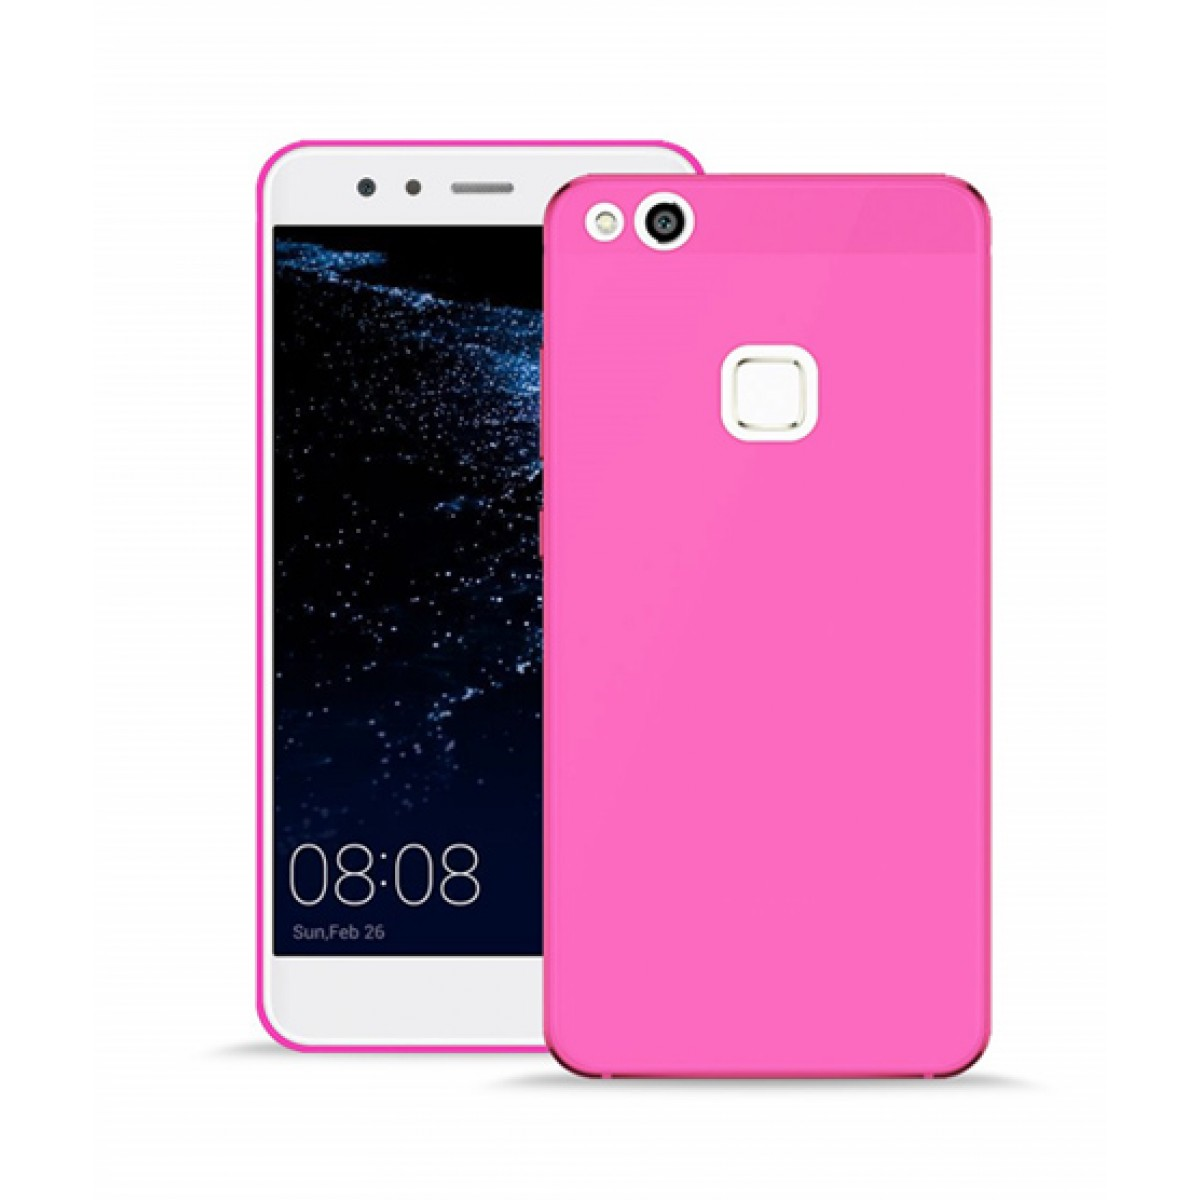 Puro Cover 03 Nude Pink Fluo Case For Huawei P10 Lite